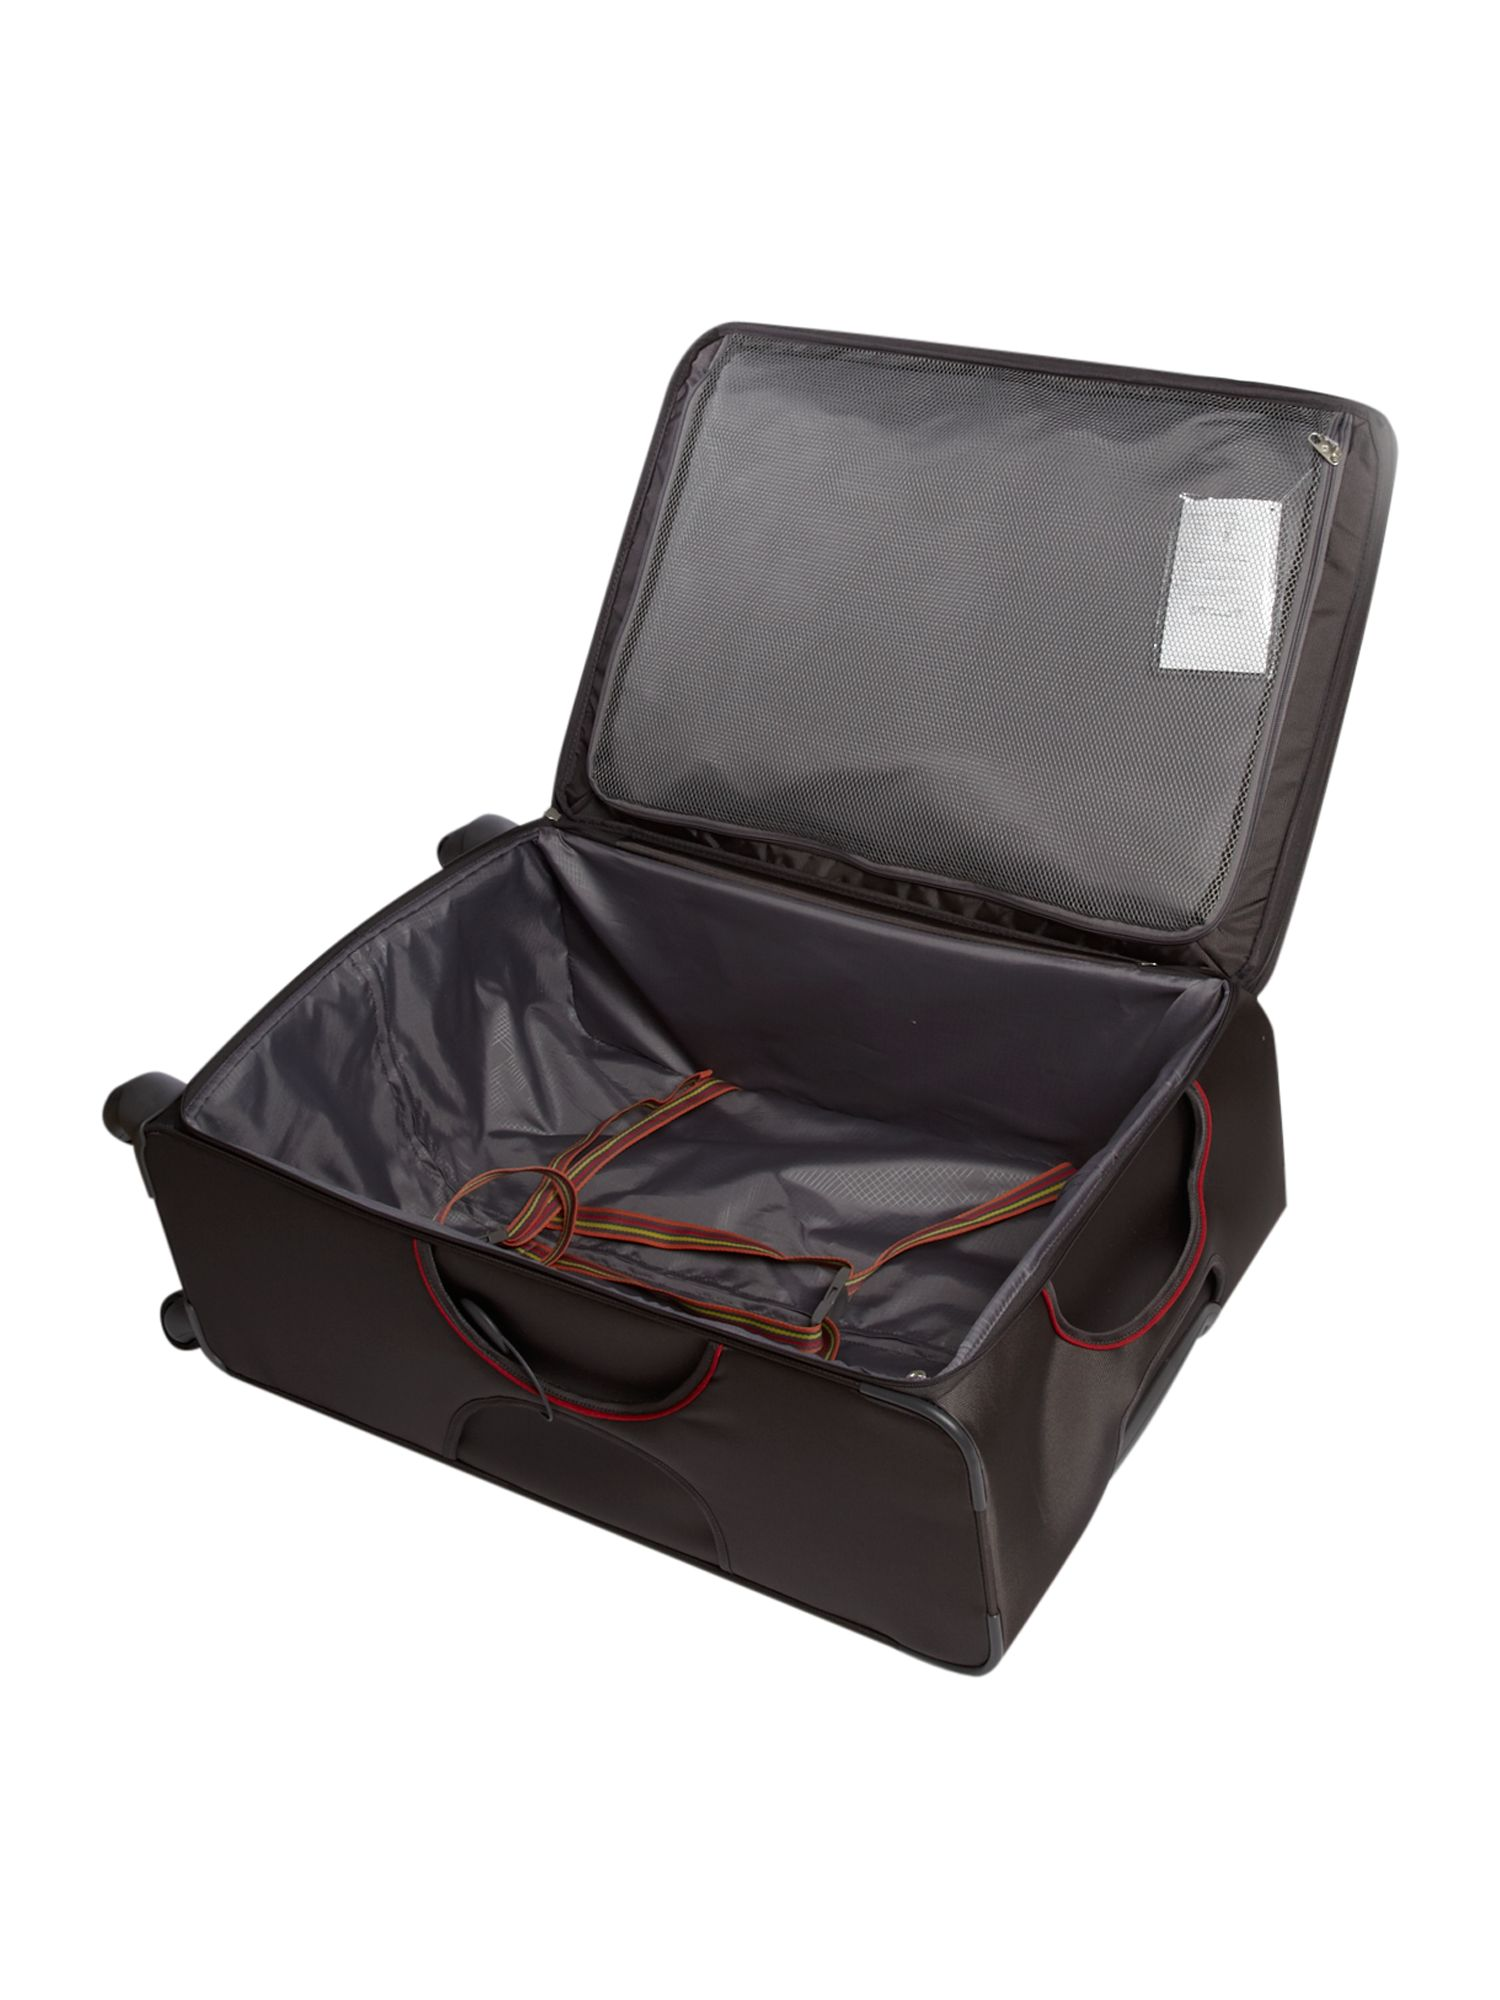 Blite Fresh Charcoal 79cm 4 Wheel Case